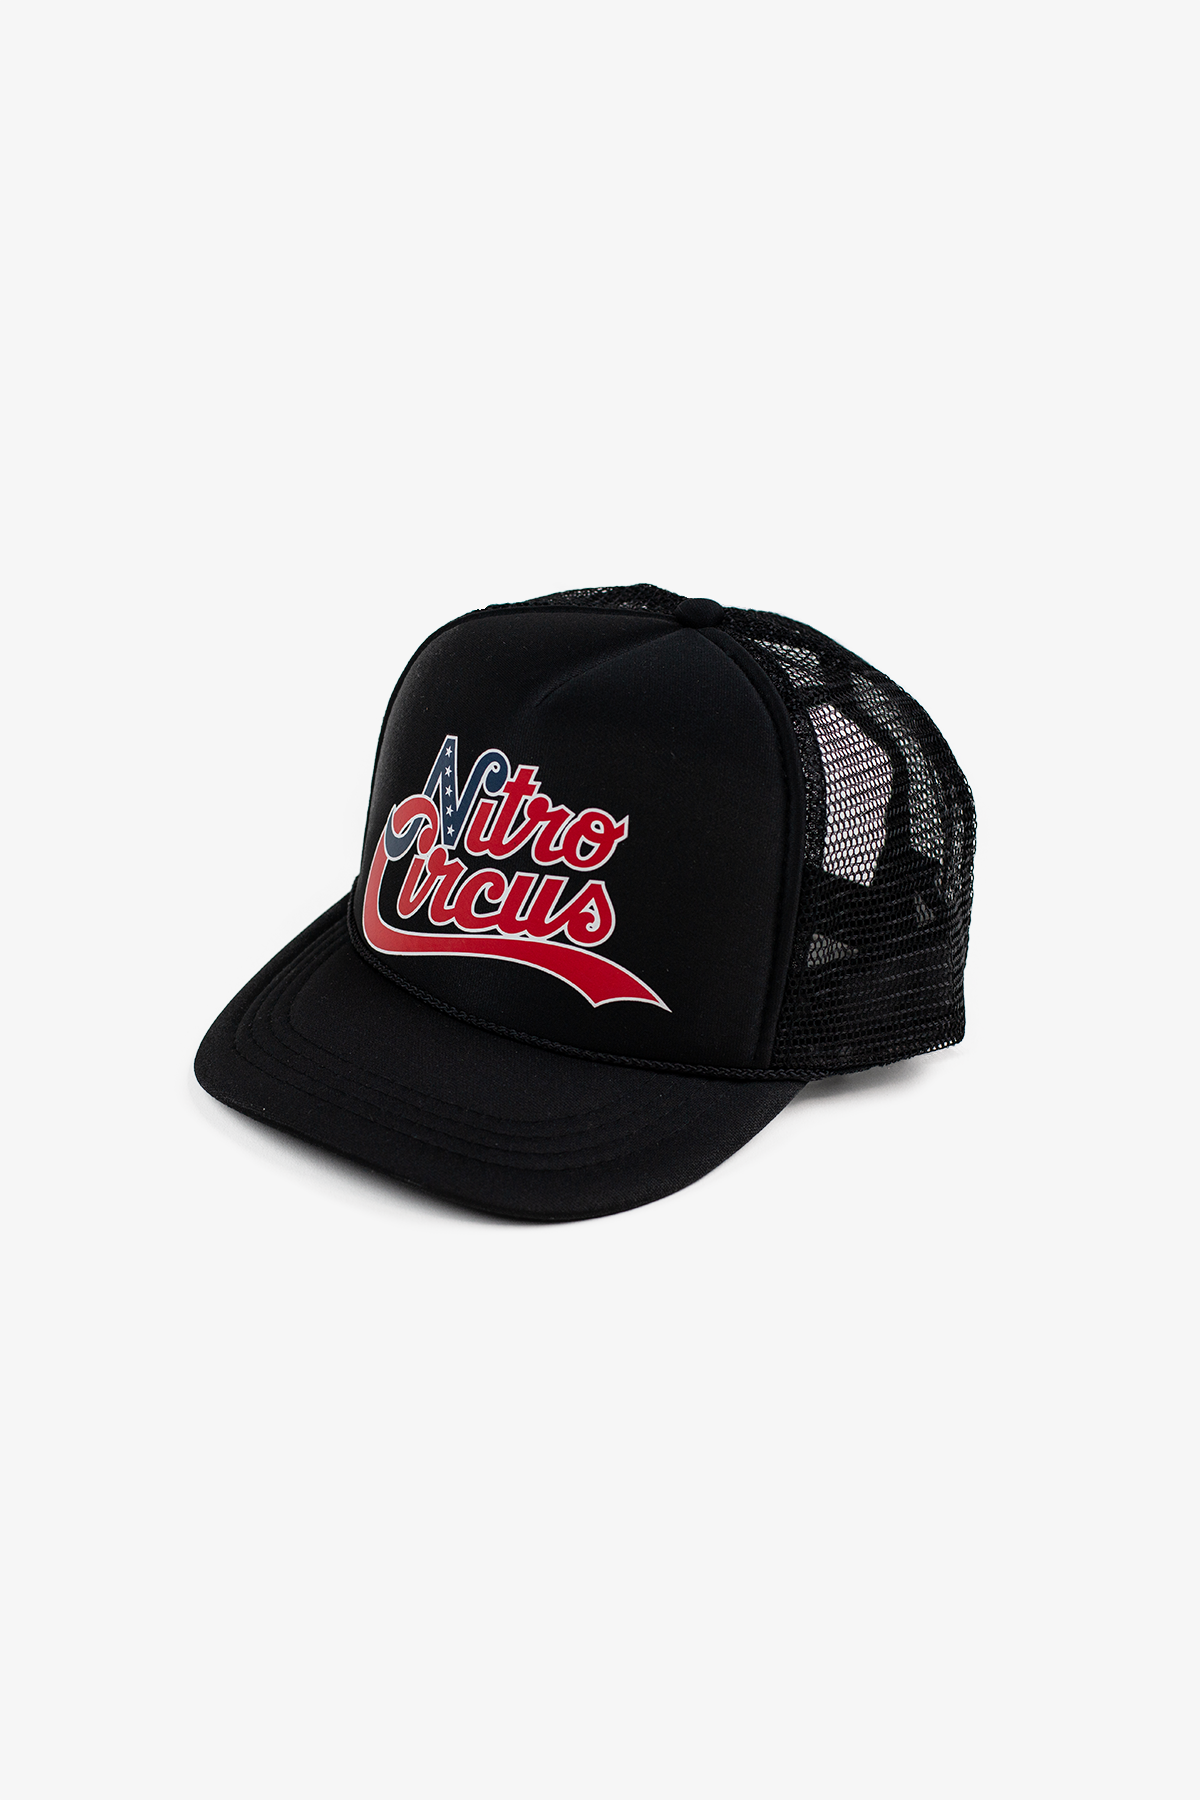 Youth Retro Trucker Hat